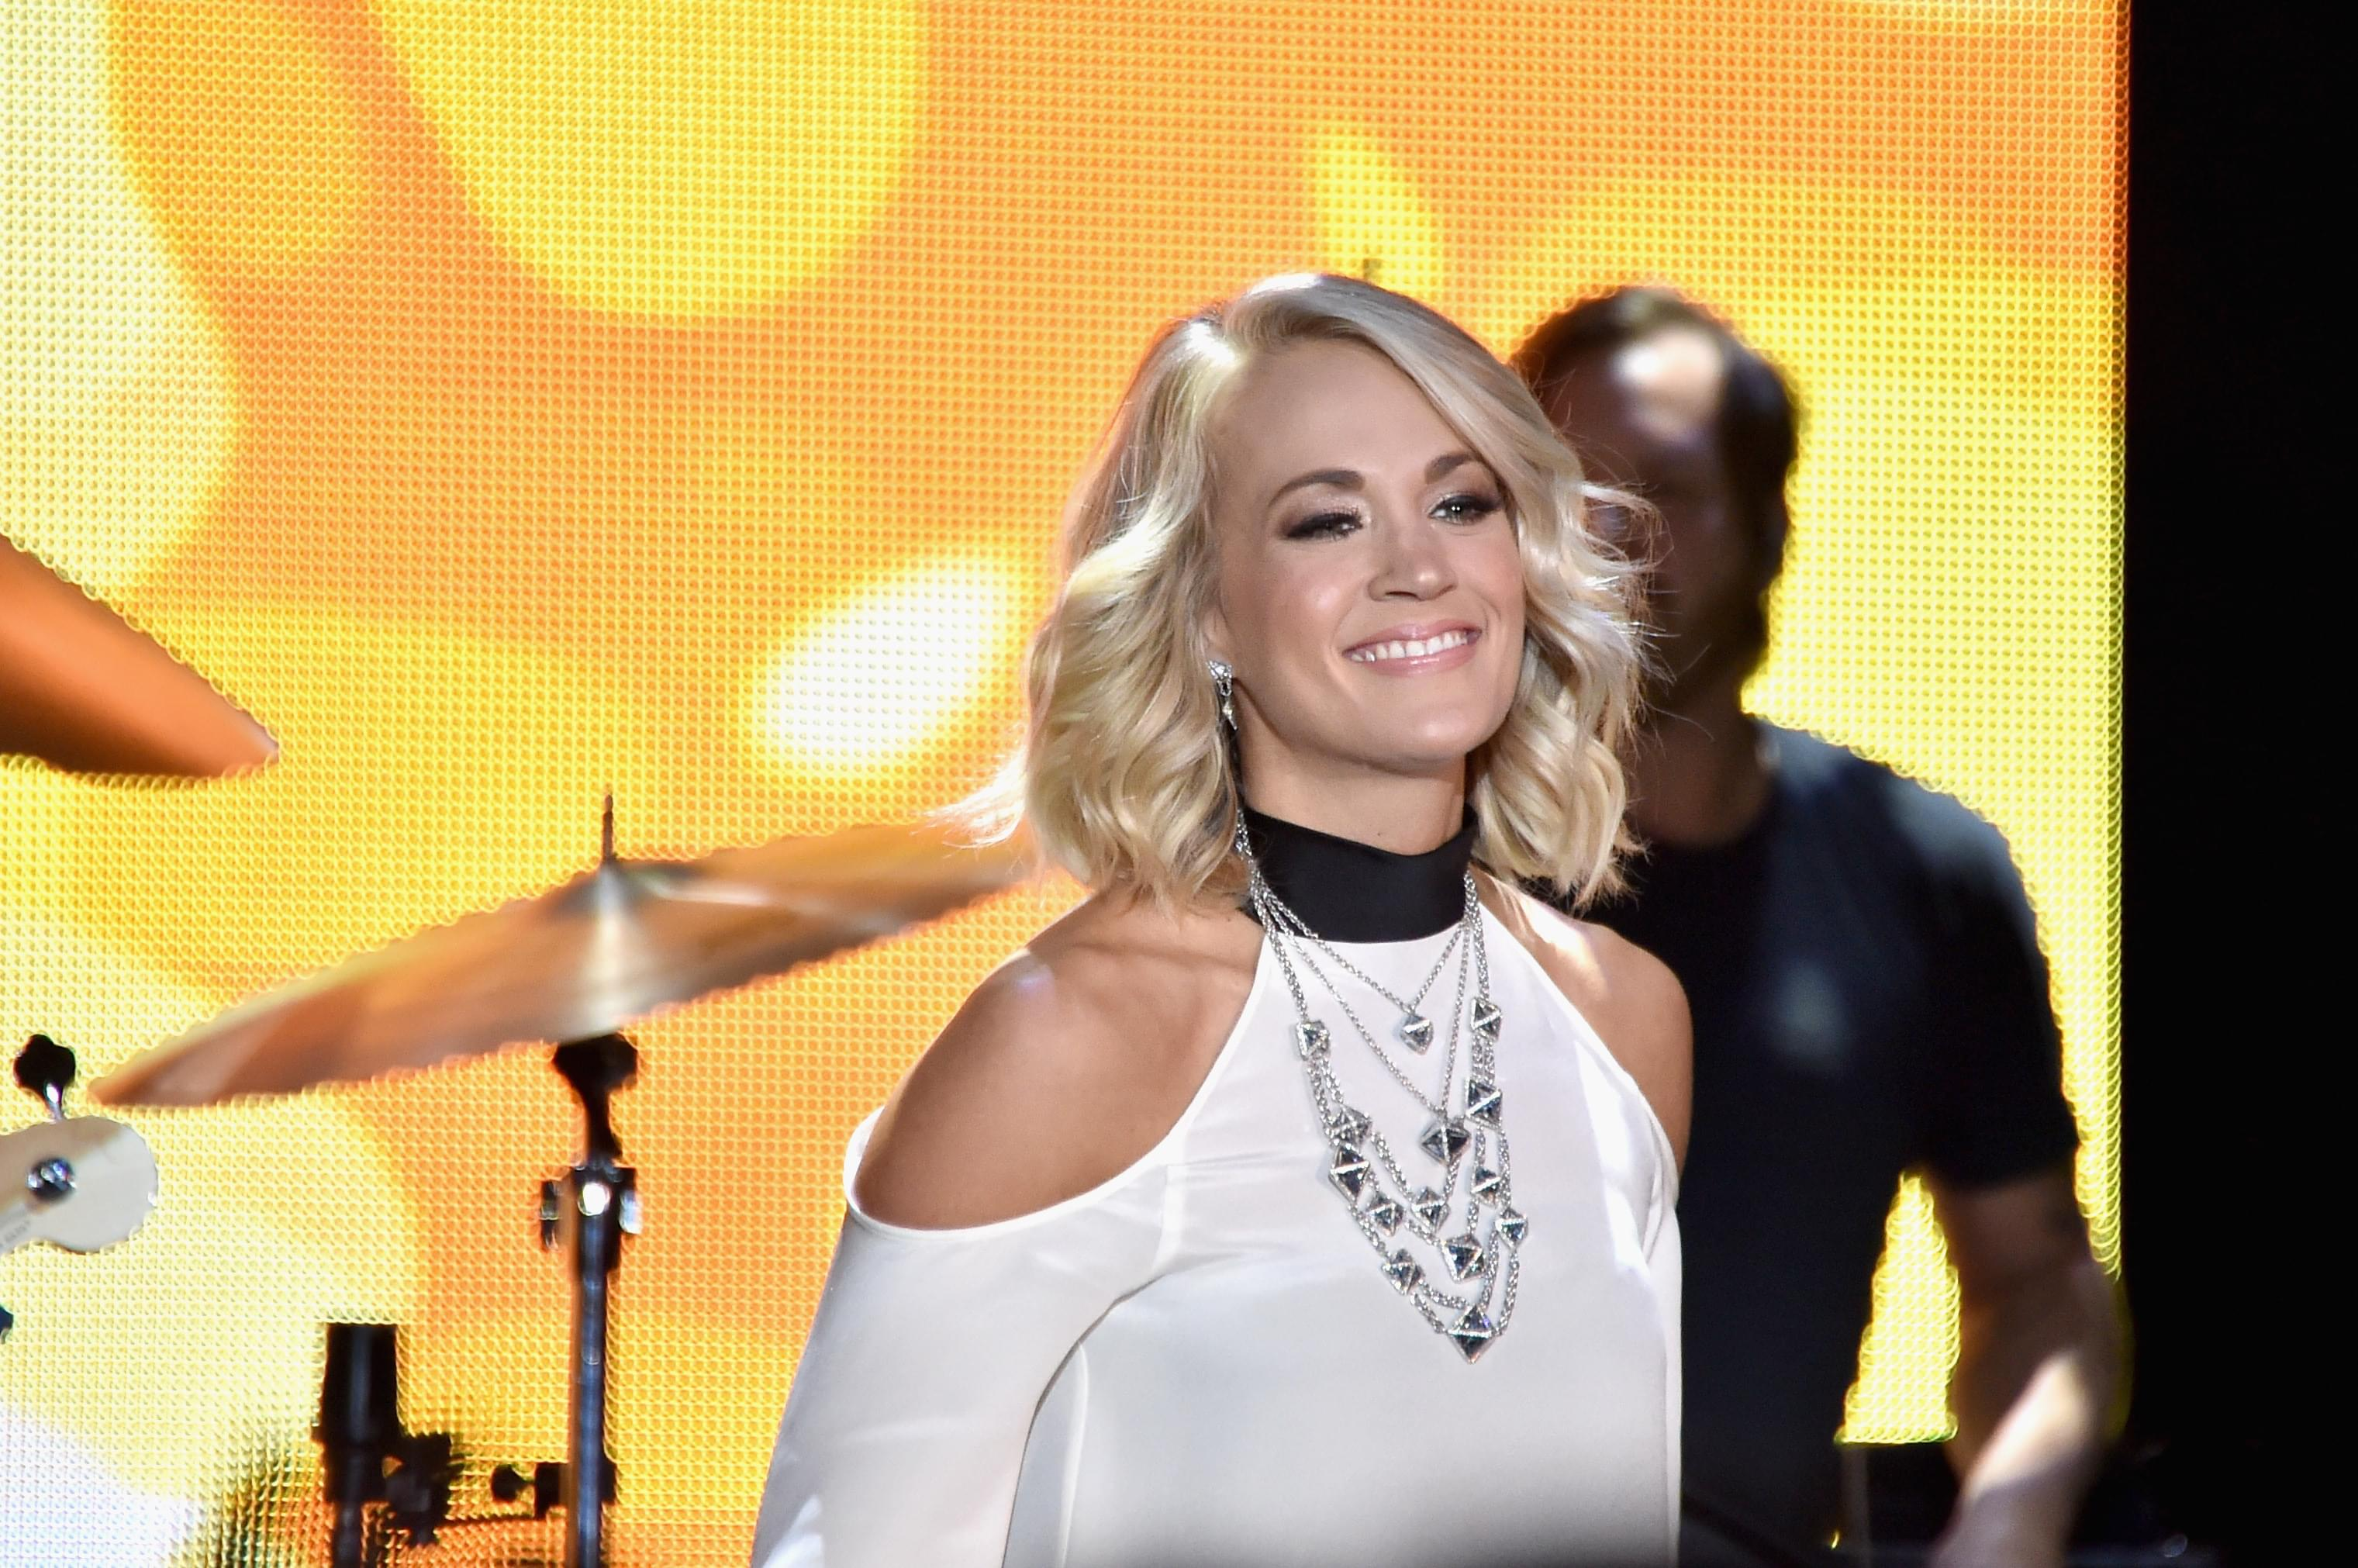 Wisconsin Gifts Carrie Underwood With A 40 Pound Sculpture Of Herself…Made From Cheese [PHOTO]